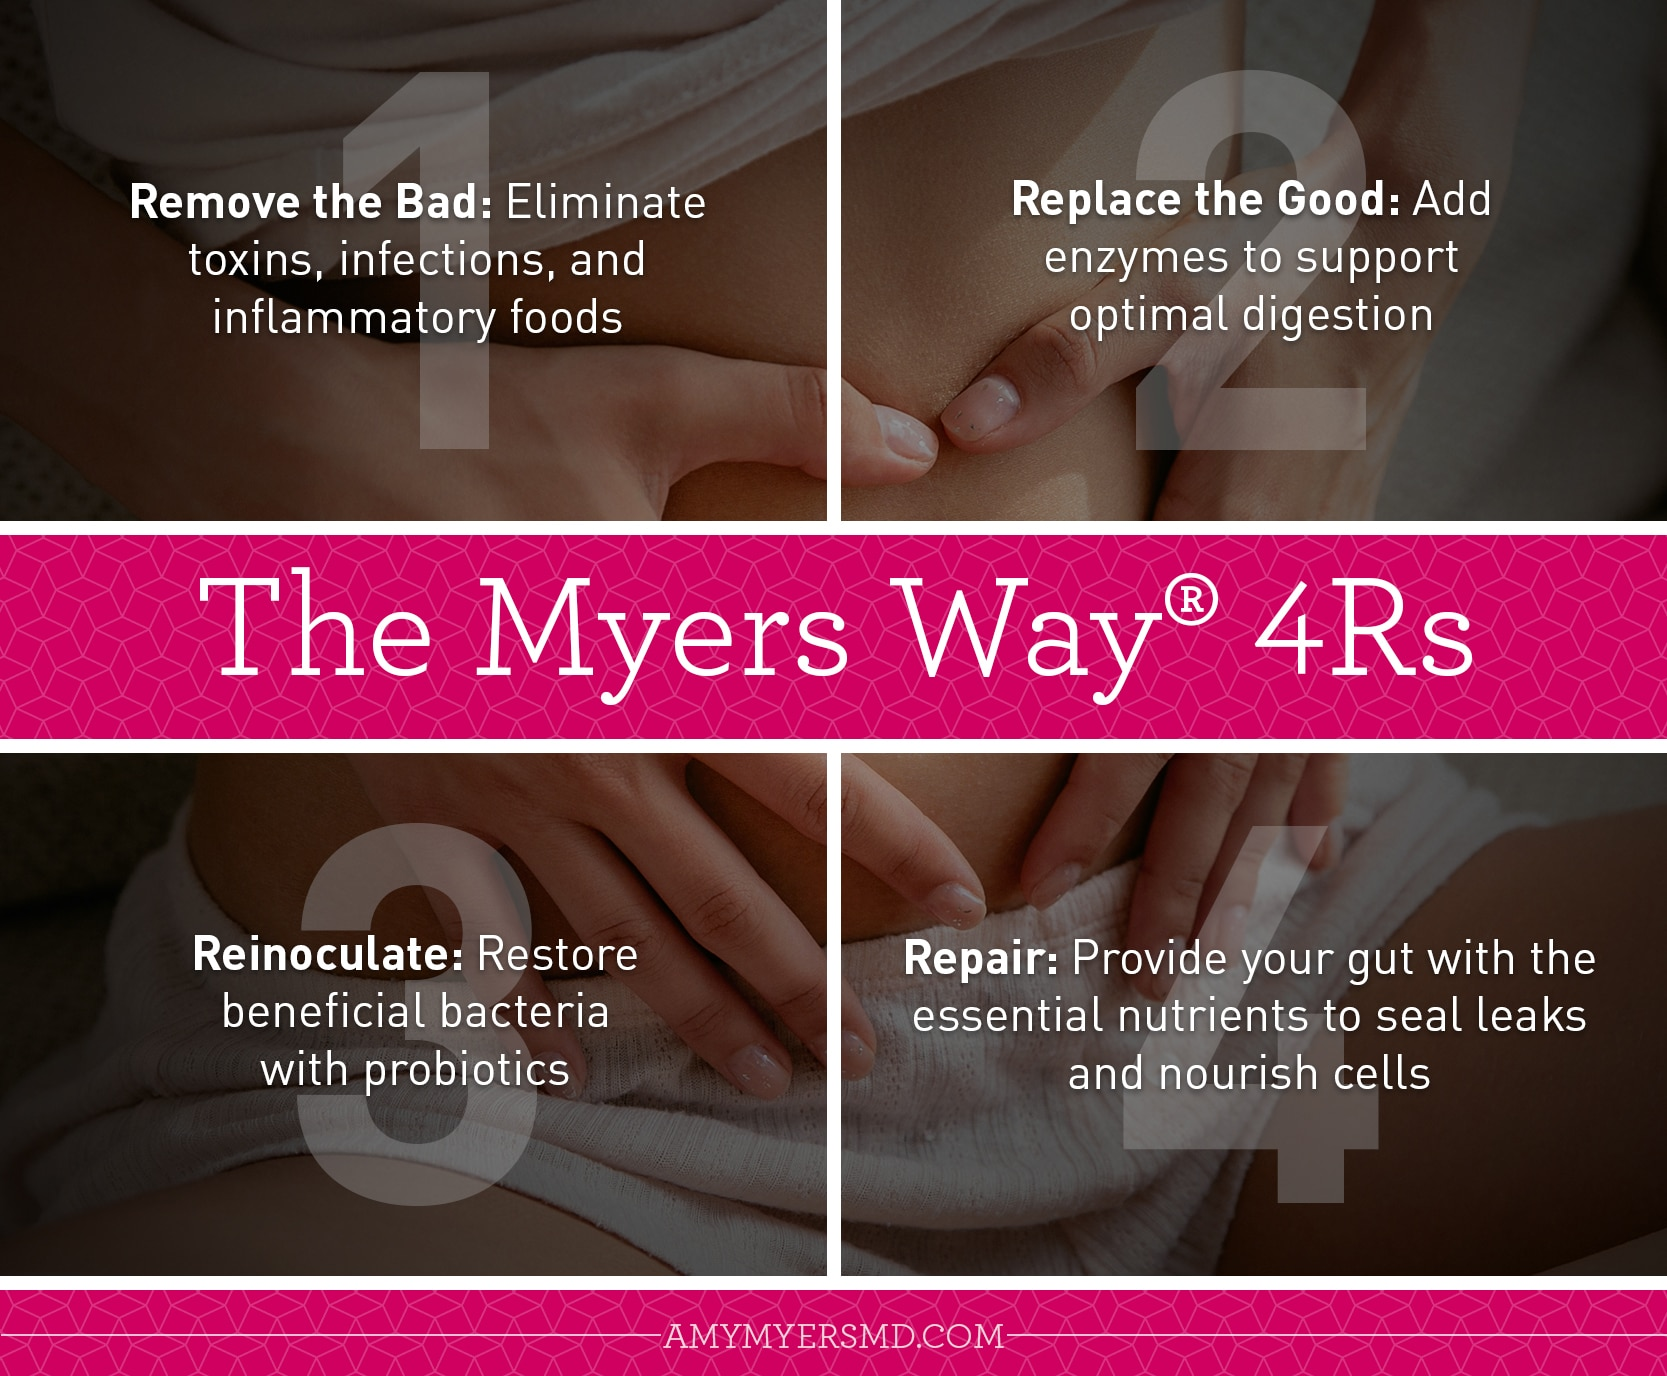 The 4Rs to Repairing a Leaky Gut - Infographic - Amy Myers MD